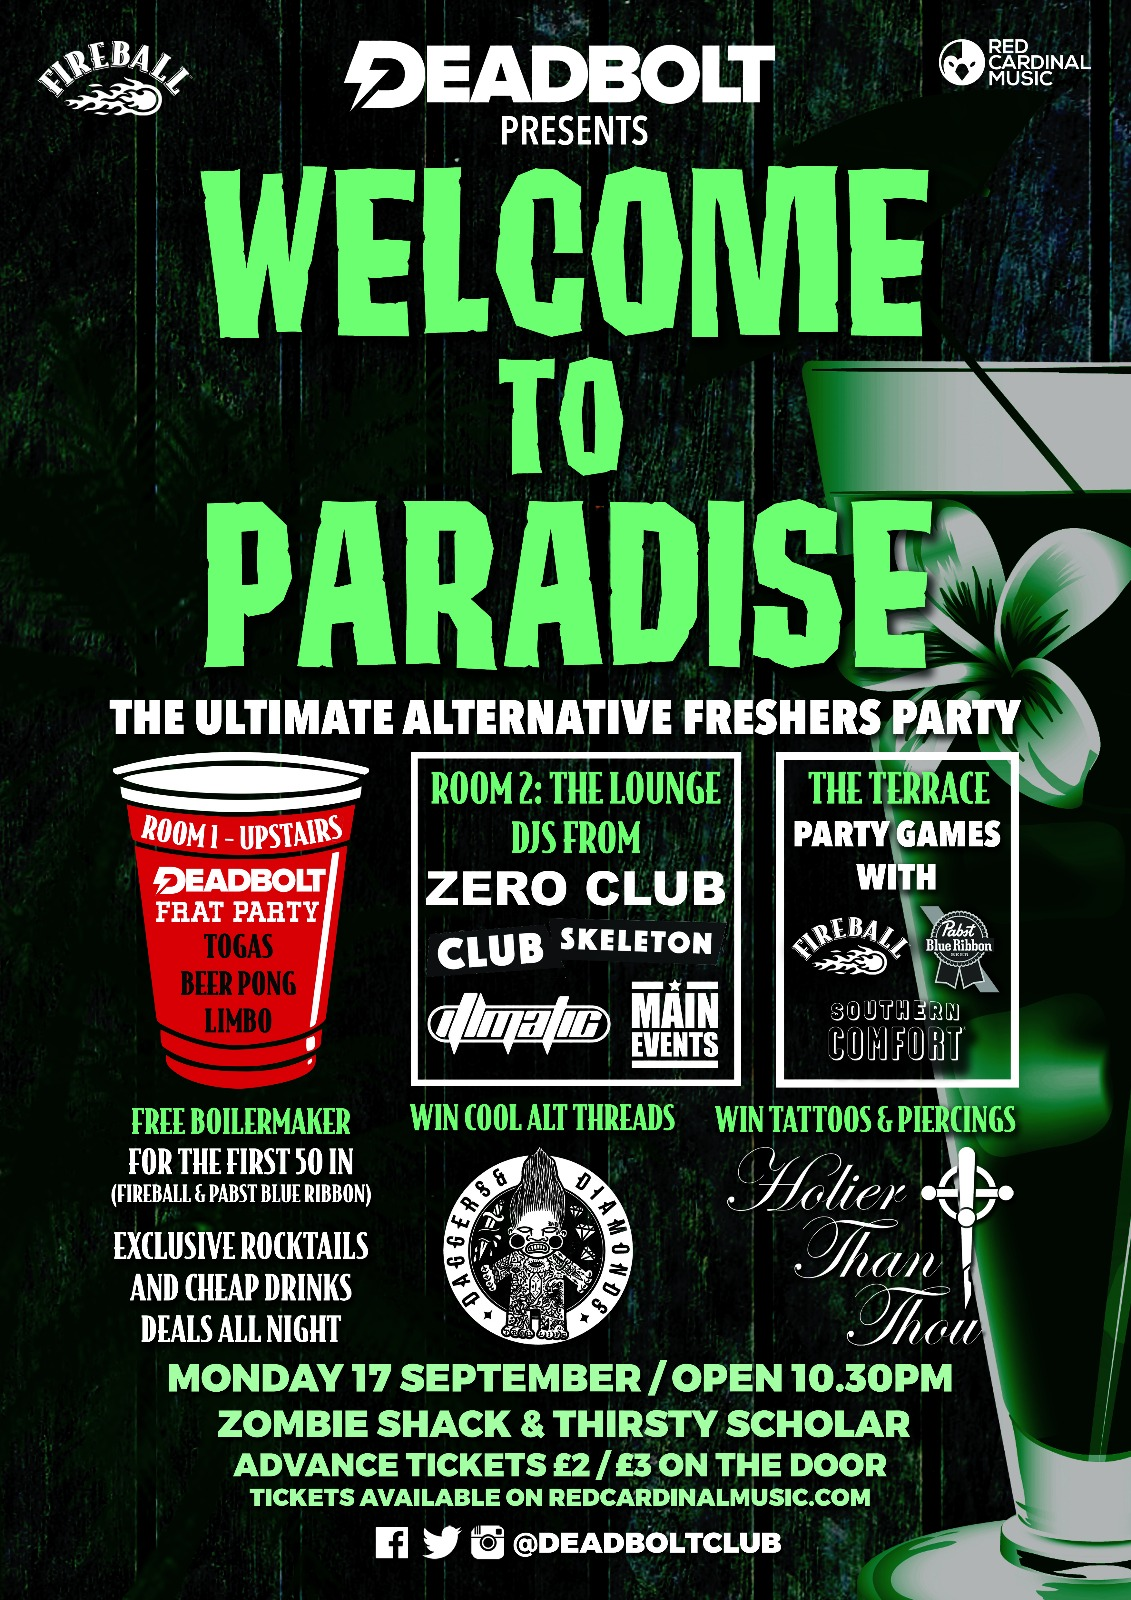 Welcome To Paradise - Alternative Freshers Manchester Poster - Red Cardinal Music - Metal, Rock, Pop Punk - Holier Than Thou Tattoos, Fireball, Pabst Blue Ribbon, Southern Comfort, Daggers and Diamonds